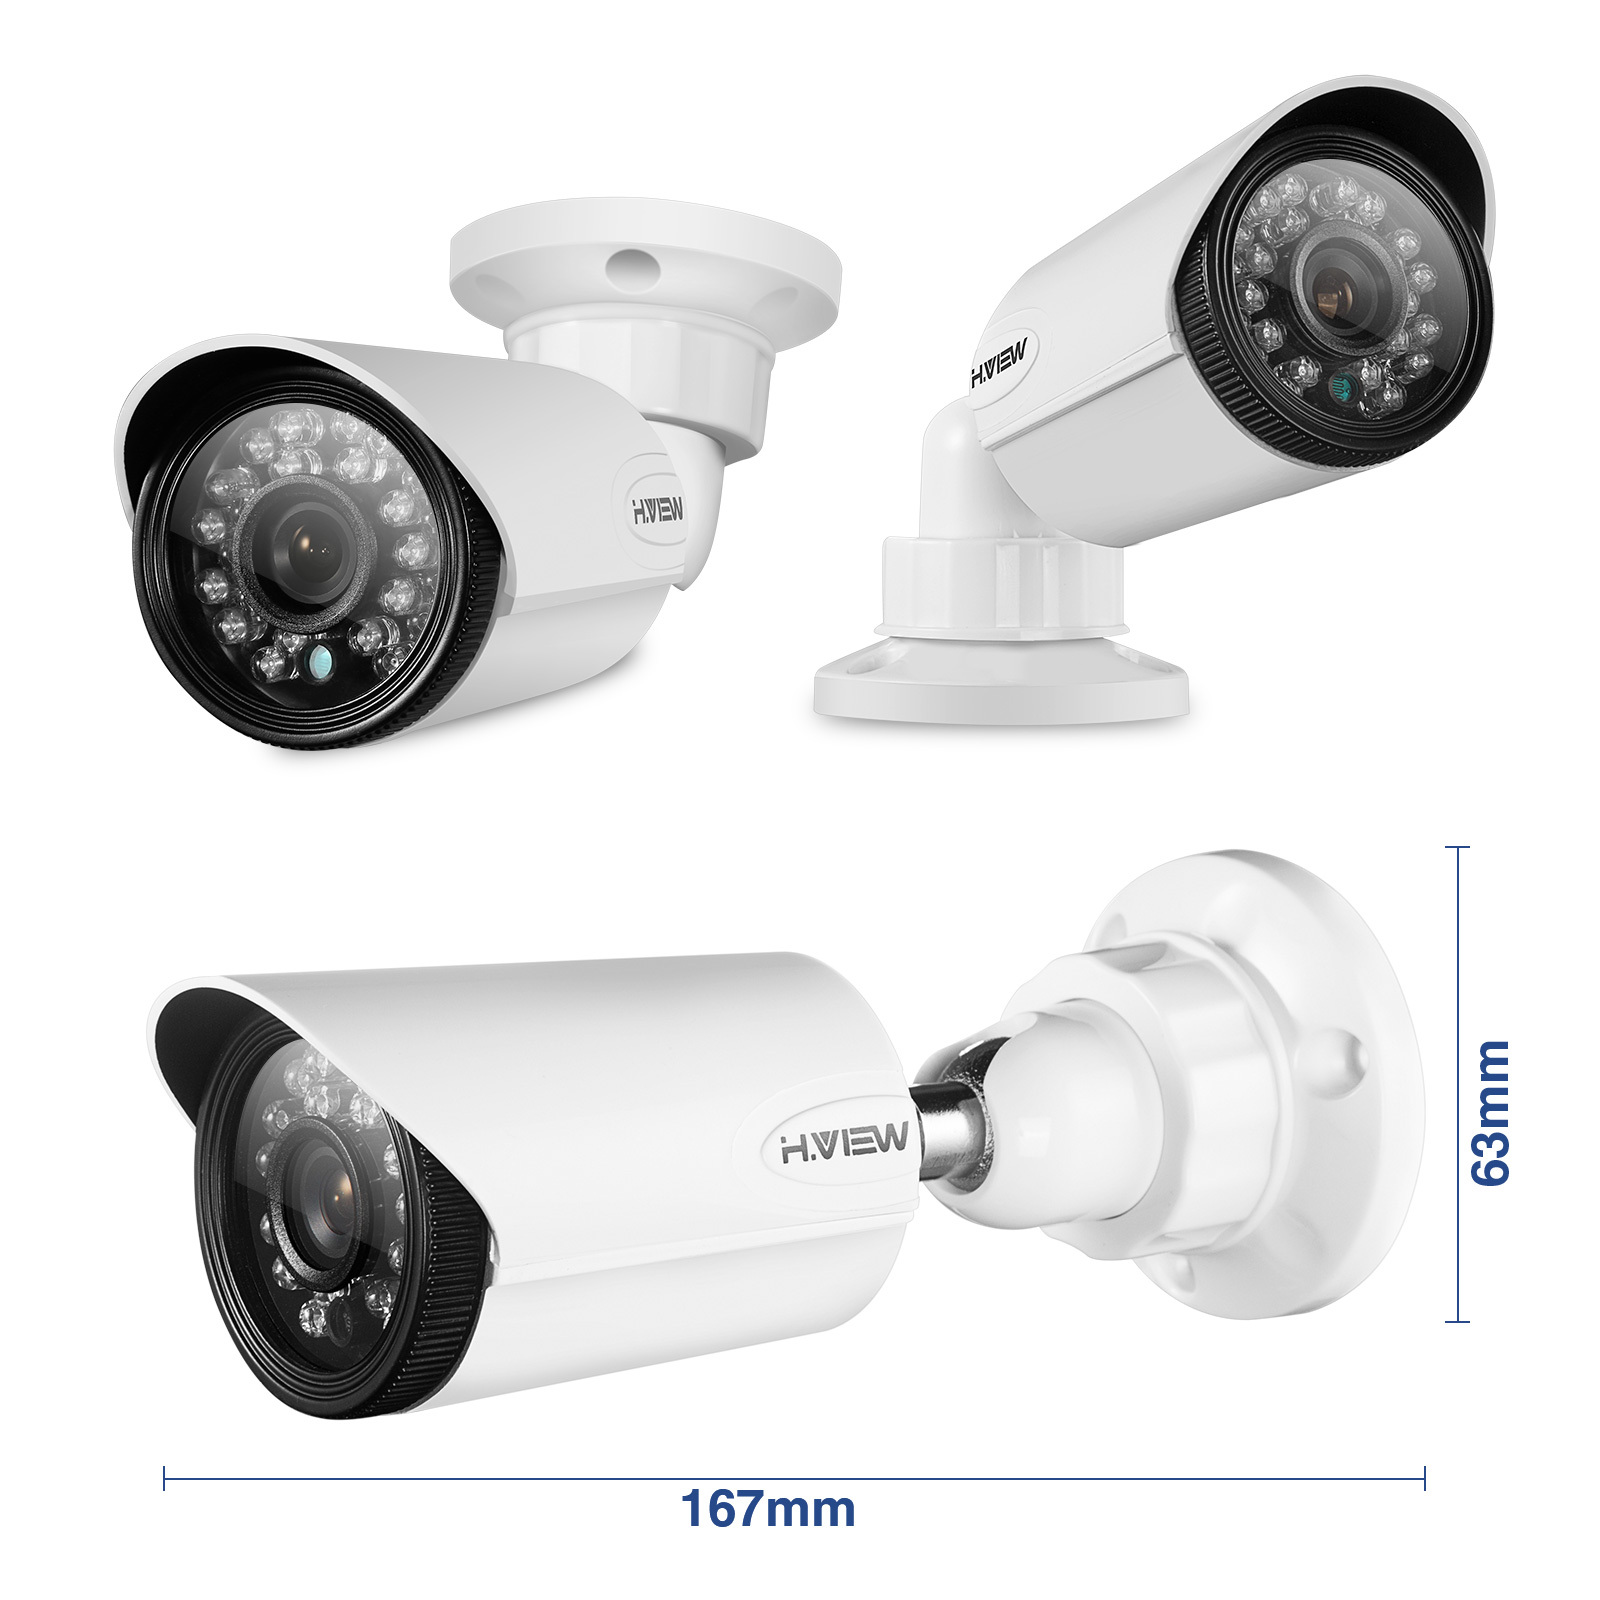 8CH HD Home Security Camera System 1TB HDD, H.VIEW 8-канальн